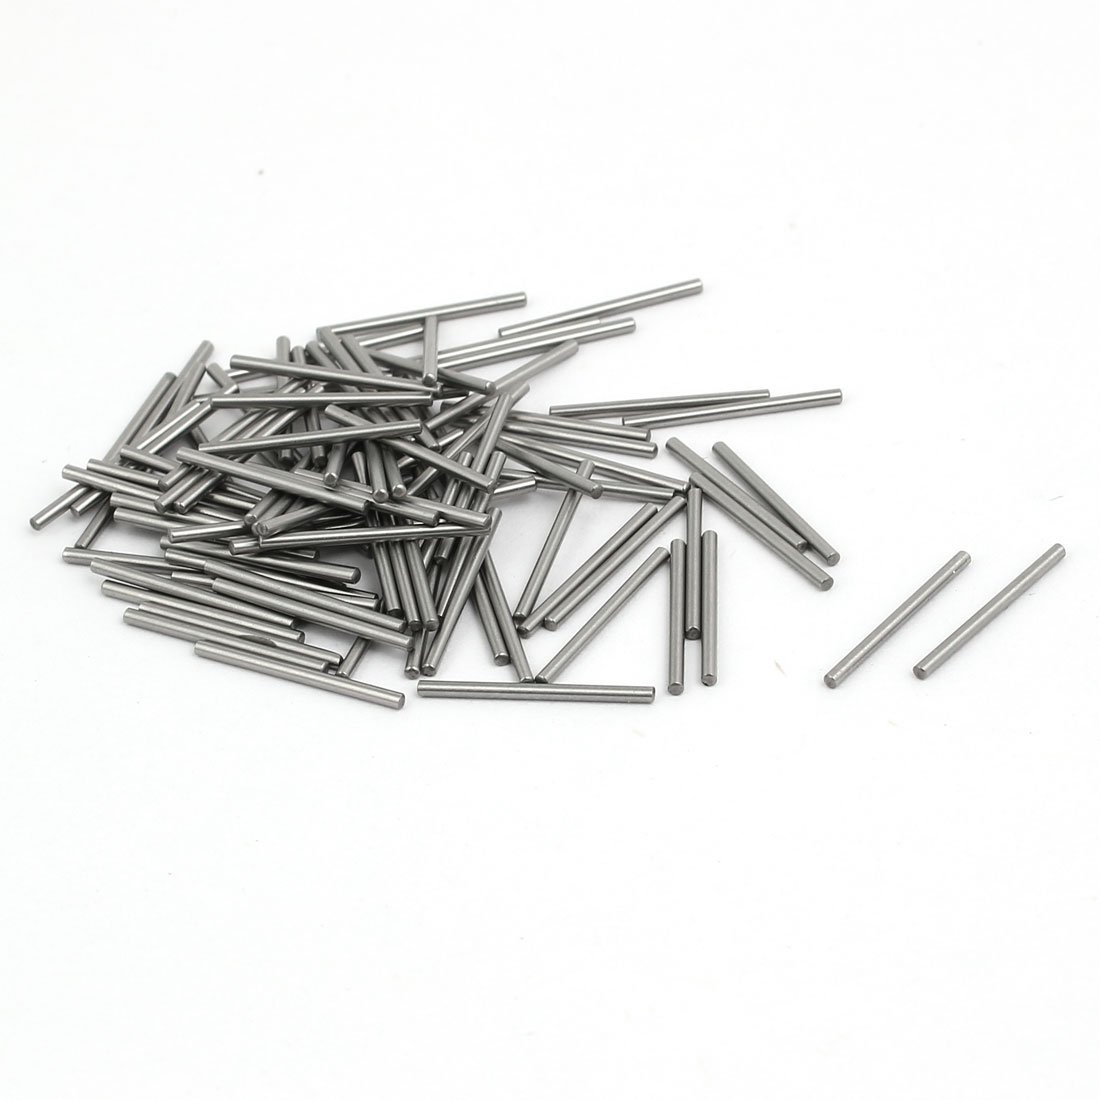 sourcingmap® 2mmx16mm Metal Parallel Dowel Pins Fasten Elements Silver Tone 100pcs US-SA-AJD-212859